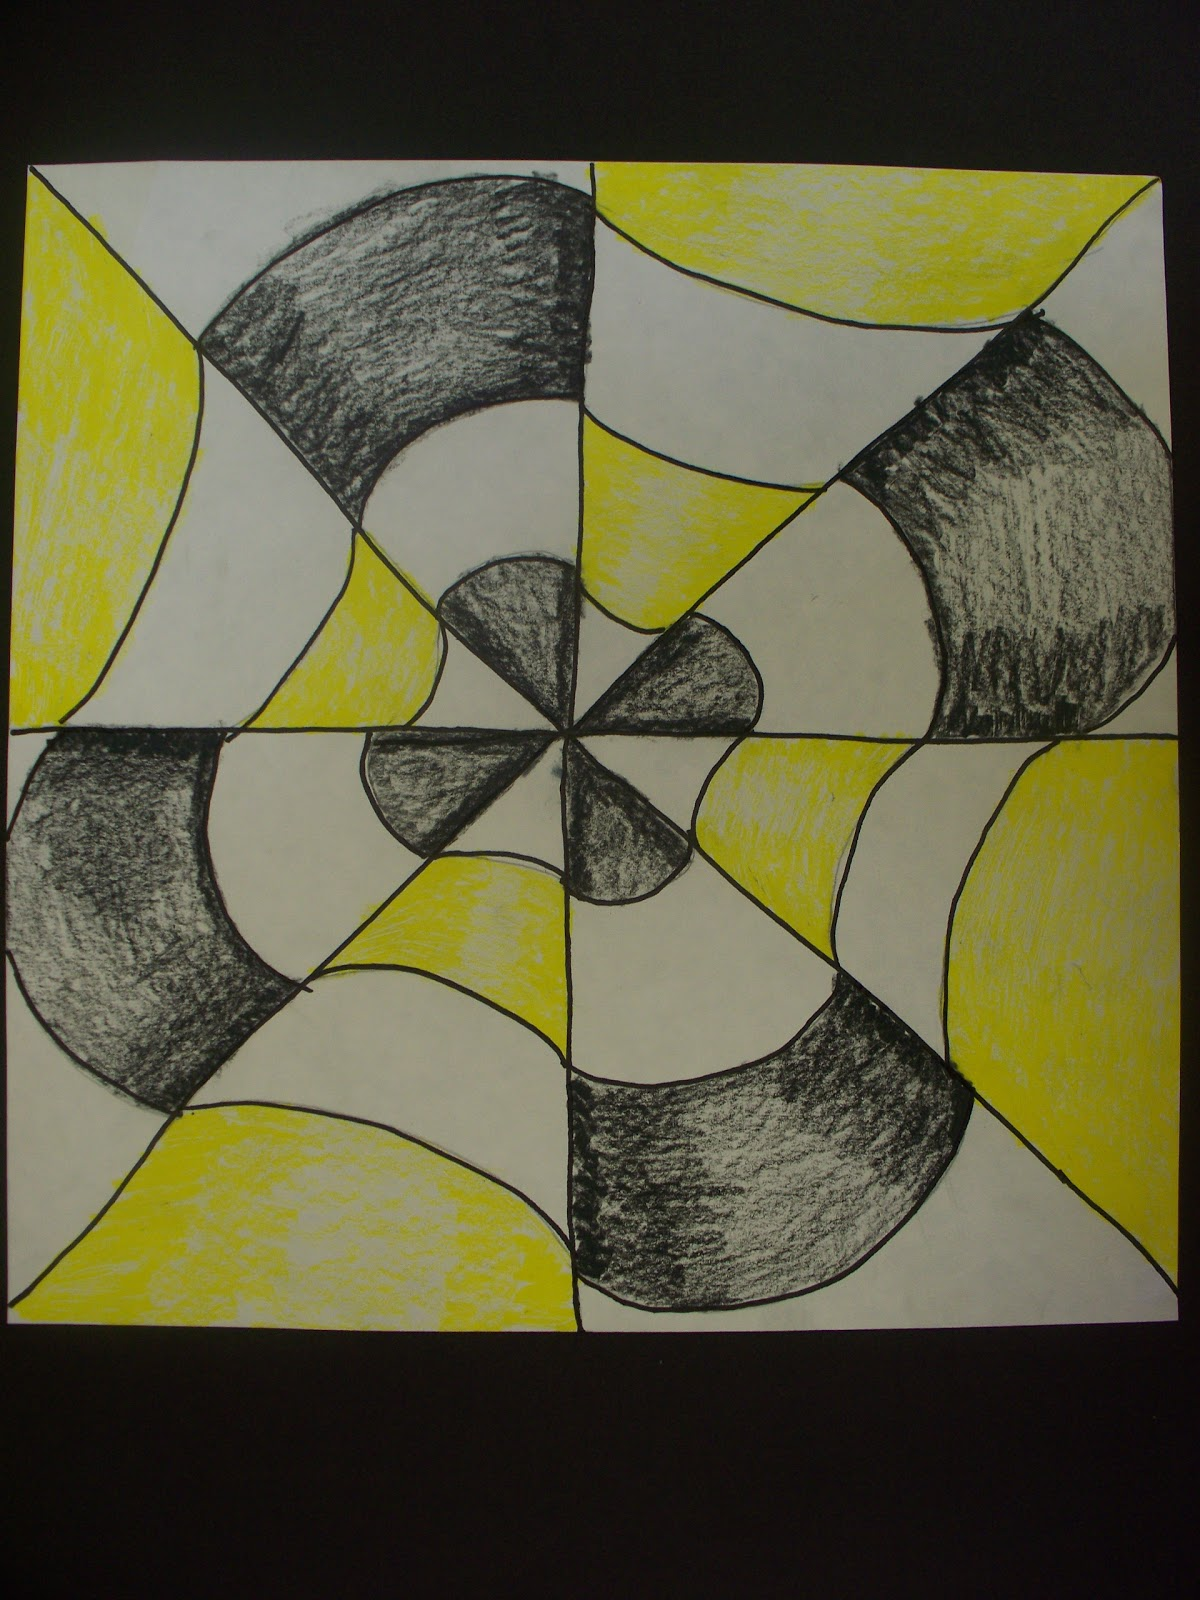 illusions optical creating drawing simple paper designs october graders these